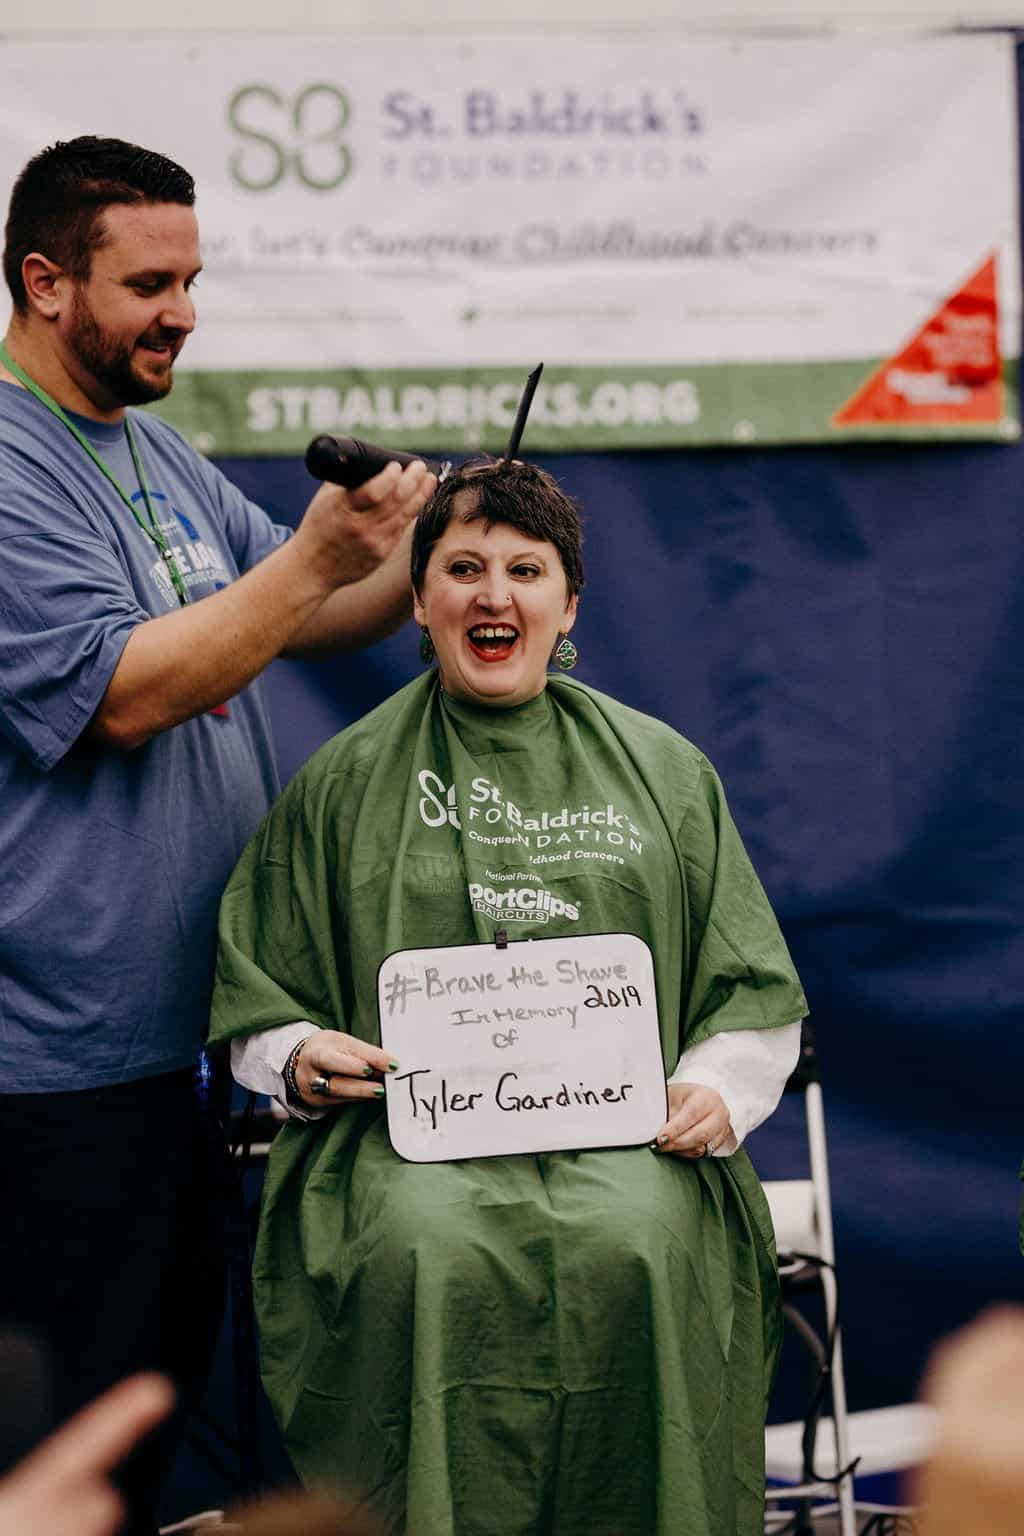 St. Baldricks | I bet you wouldn't shave your head 202